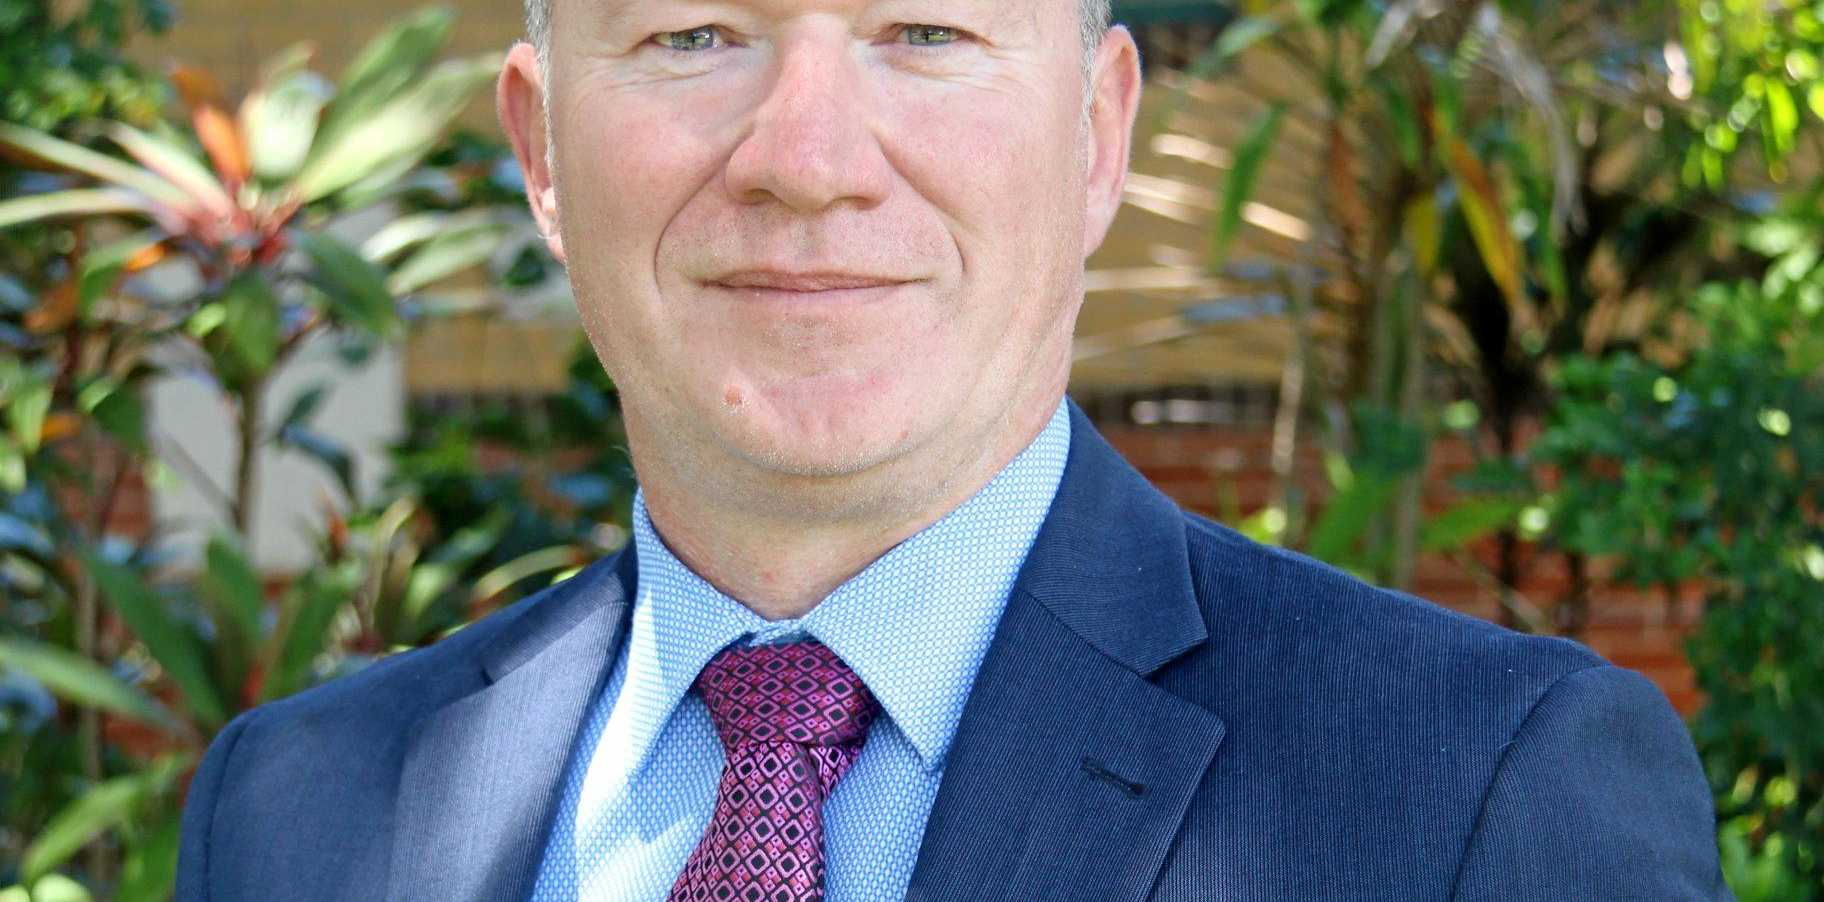 SCHOOL'S IN: St Luke's Anglican School's new principal Craig Merritt is looking forward to making connections in the community.